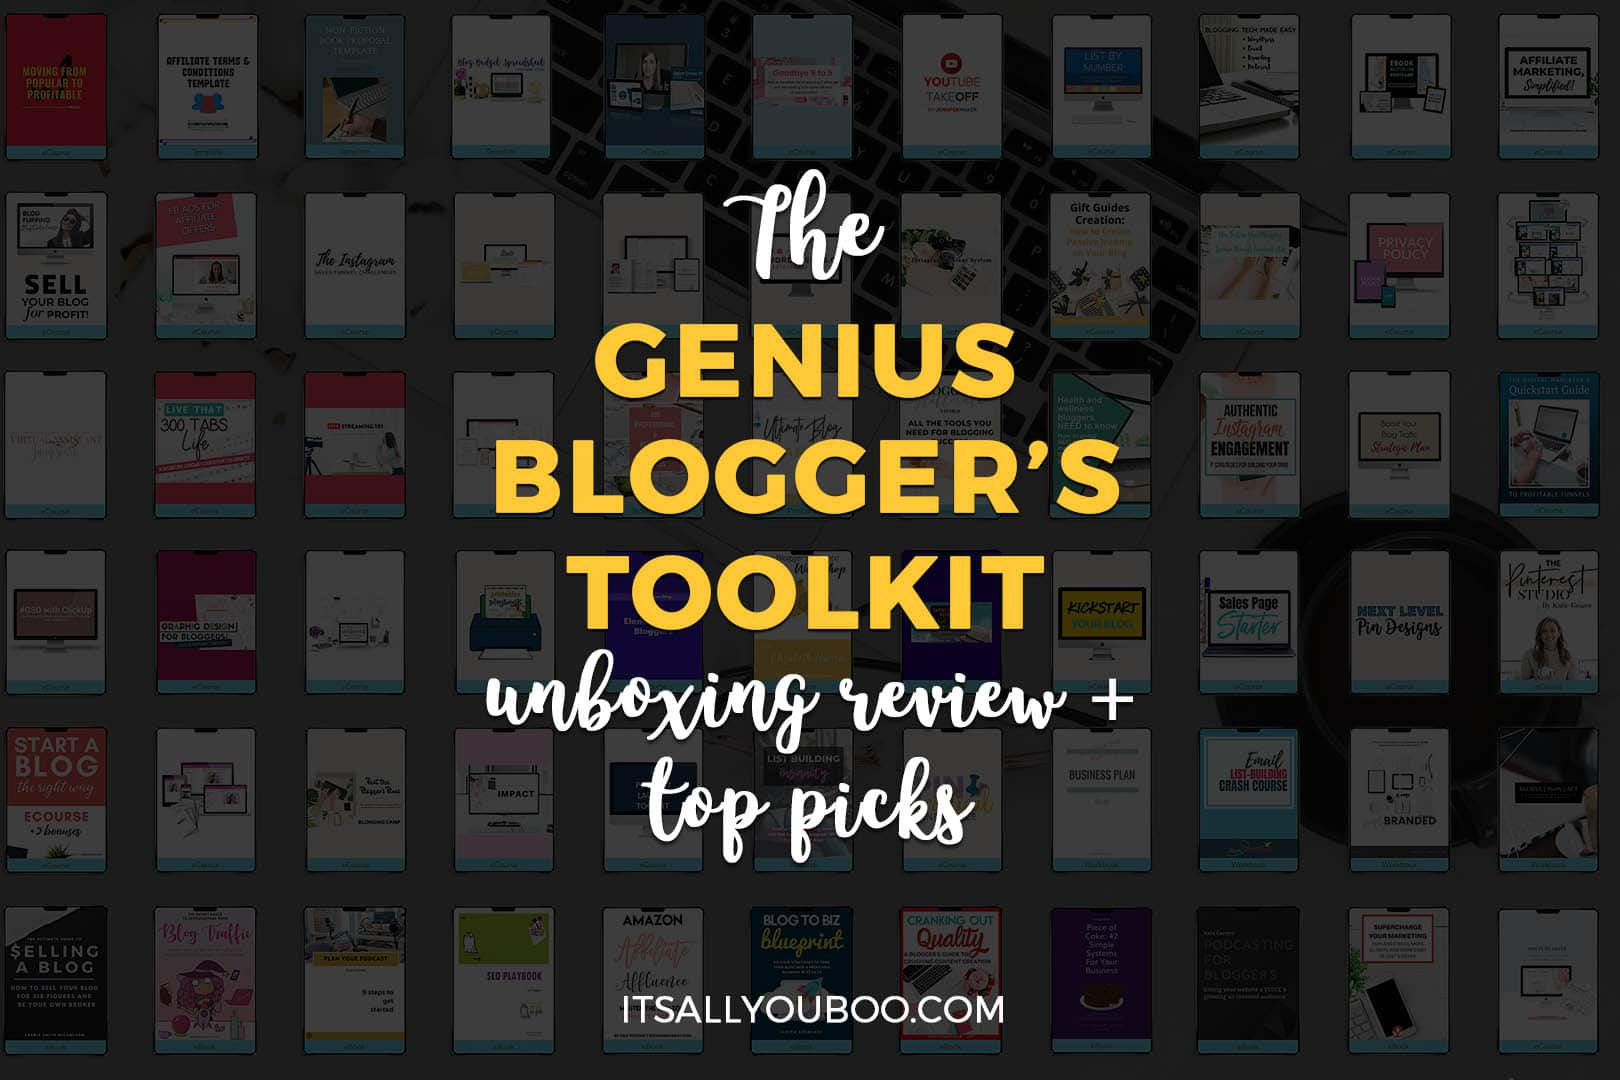 The 2019 Genius Blogger's Toolkit Review